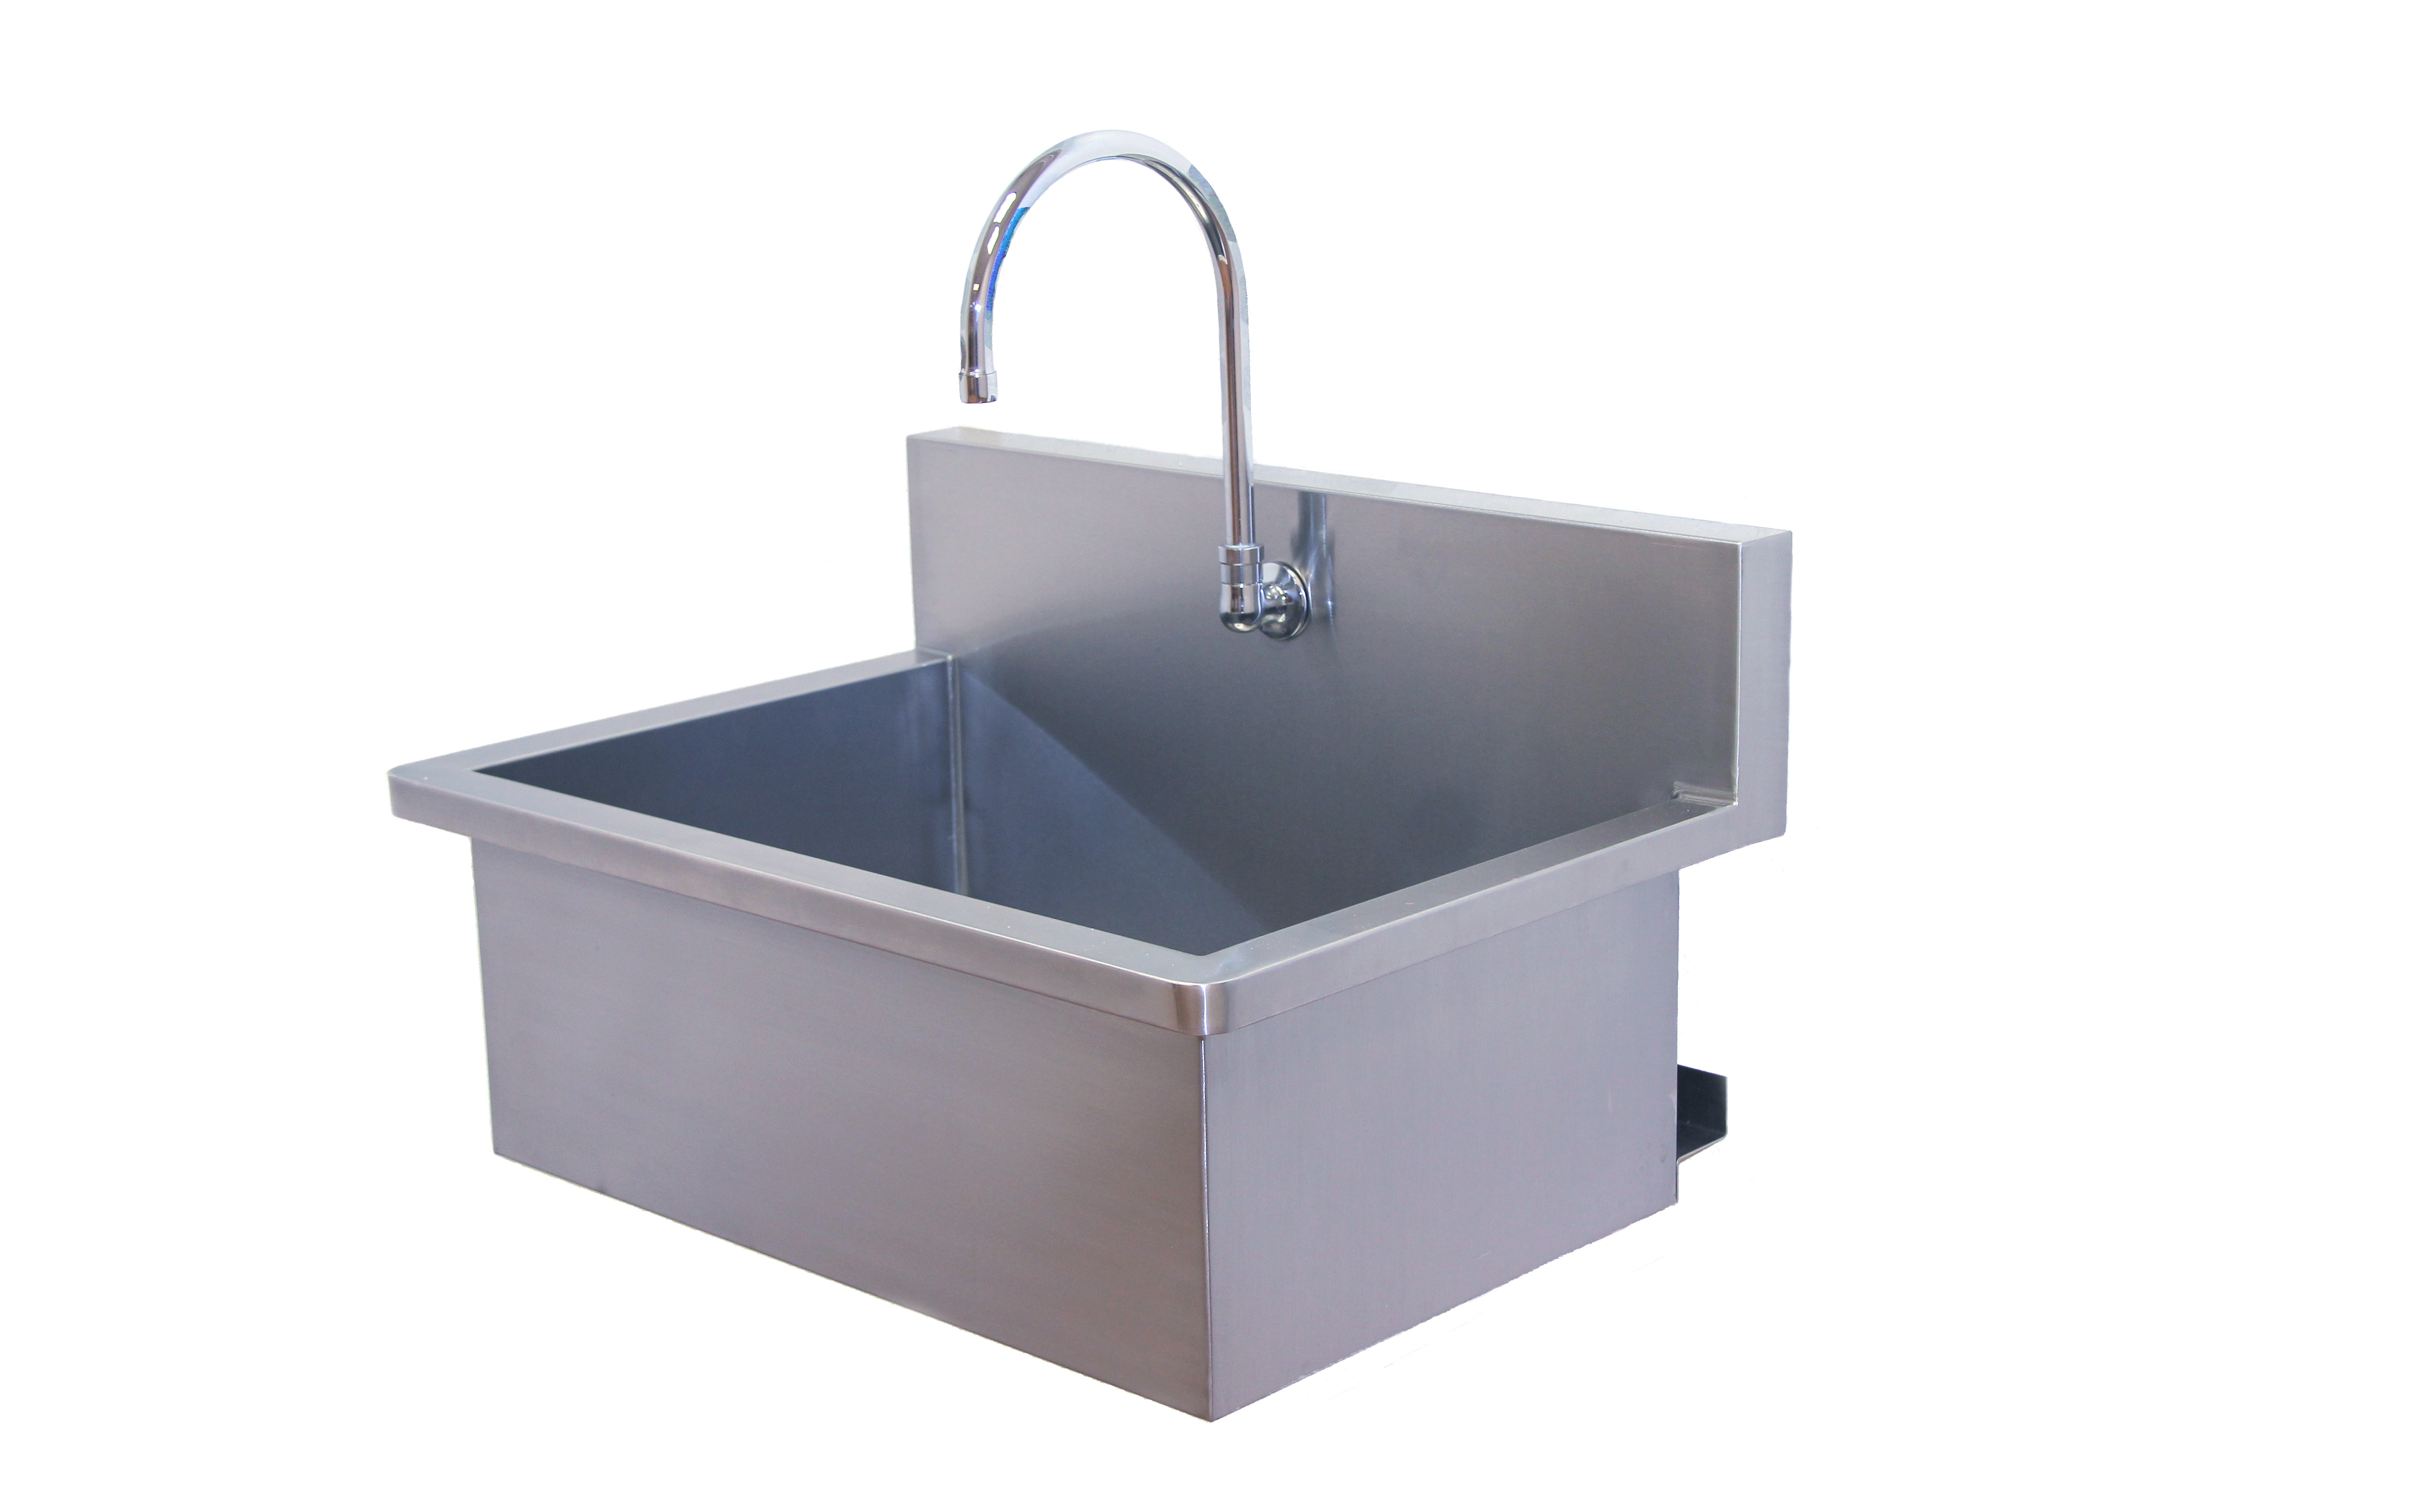 Superieur Direct Animal Photo: All Veterinary Scrub Sinks Are Not The Same! Our  American